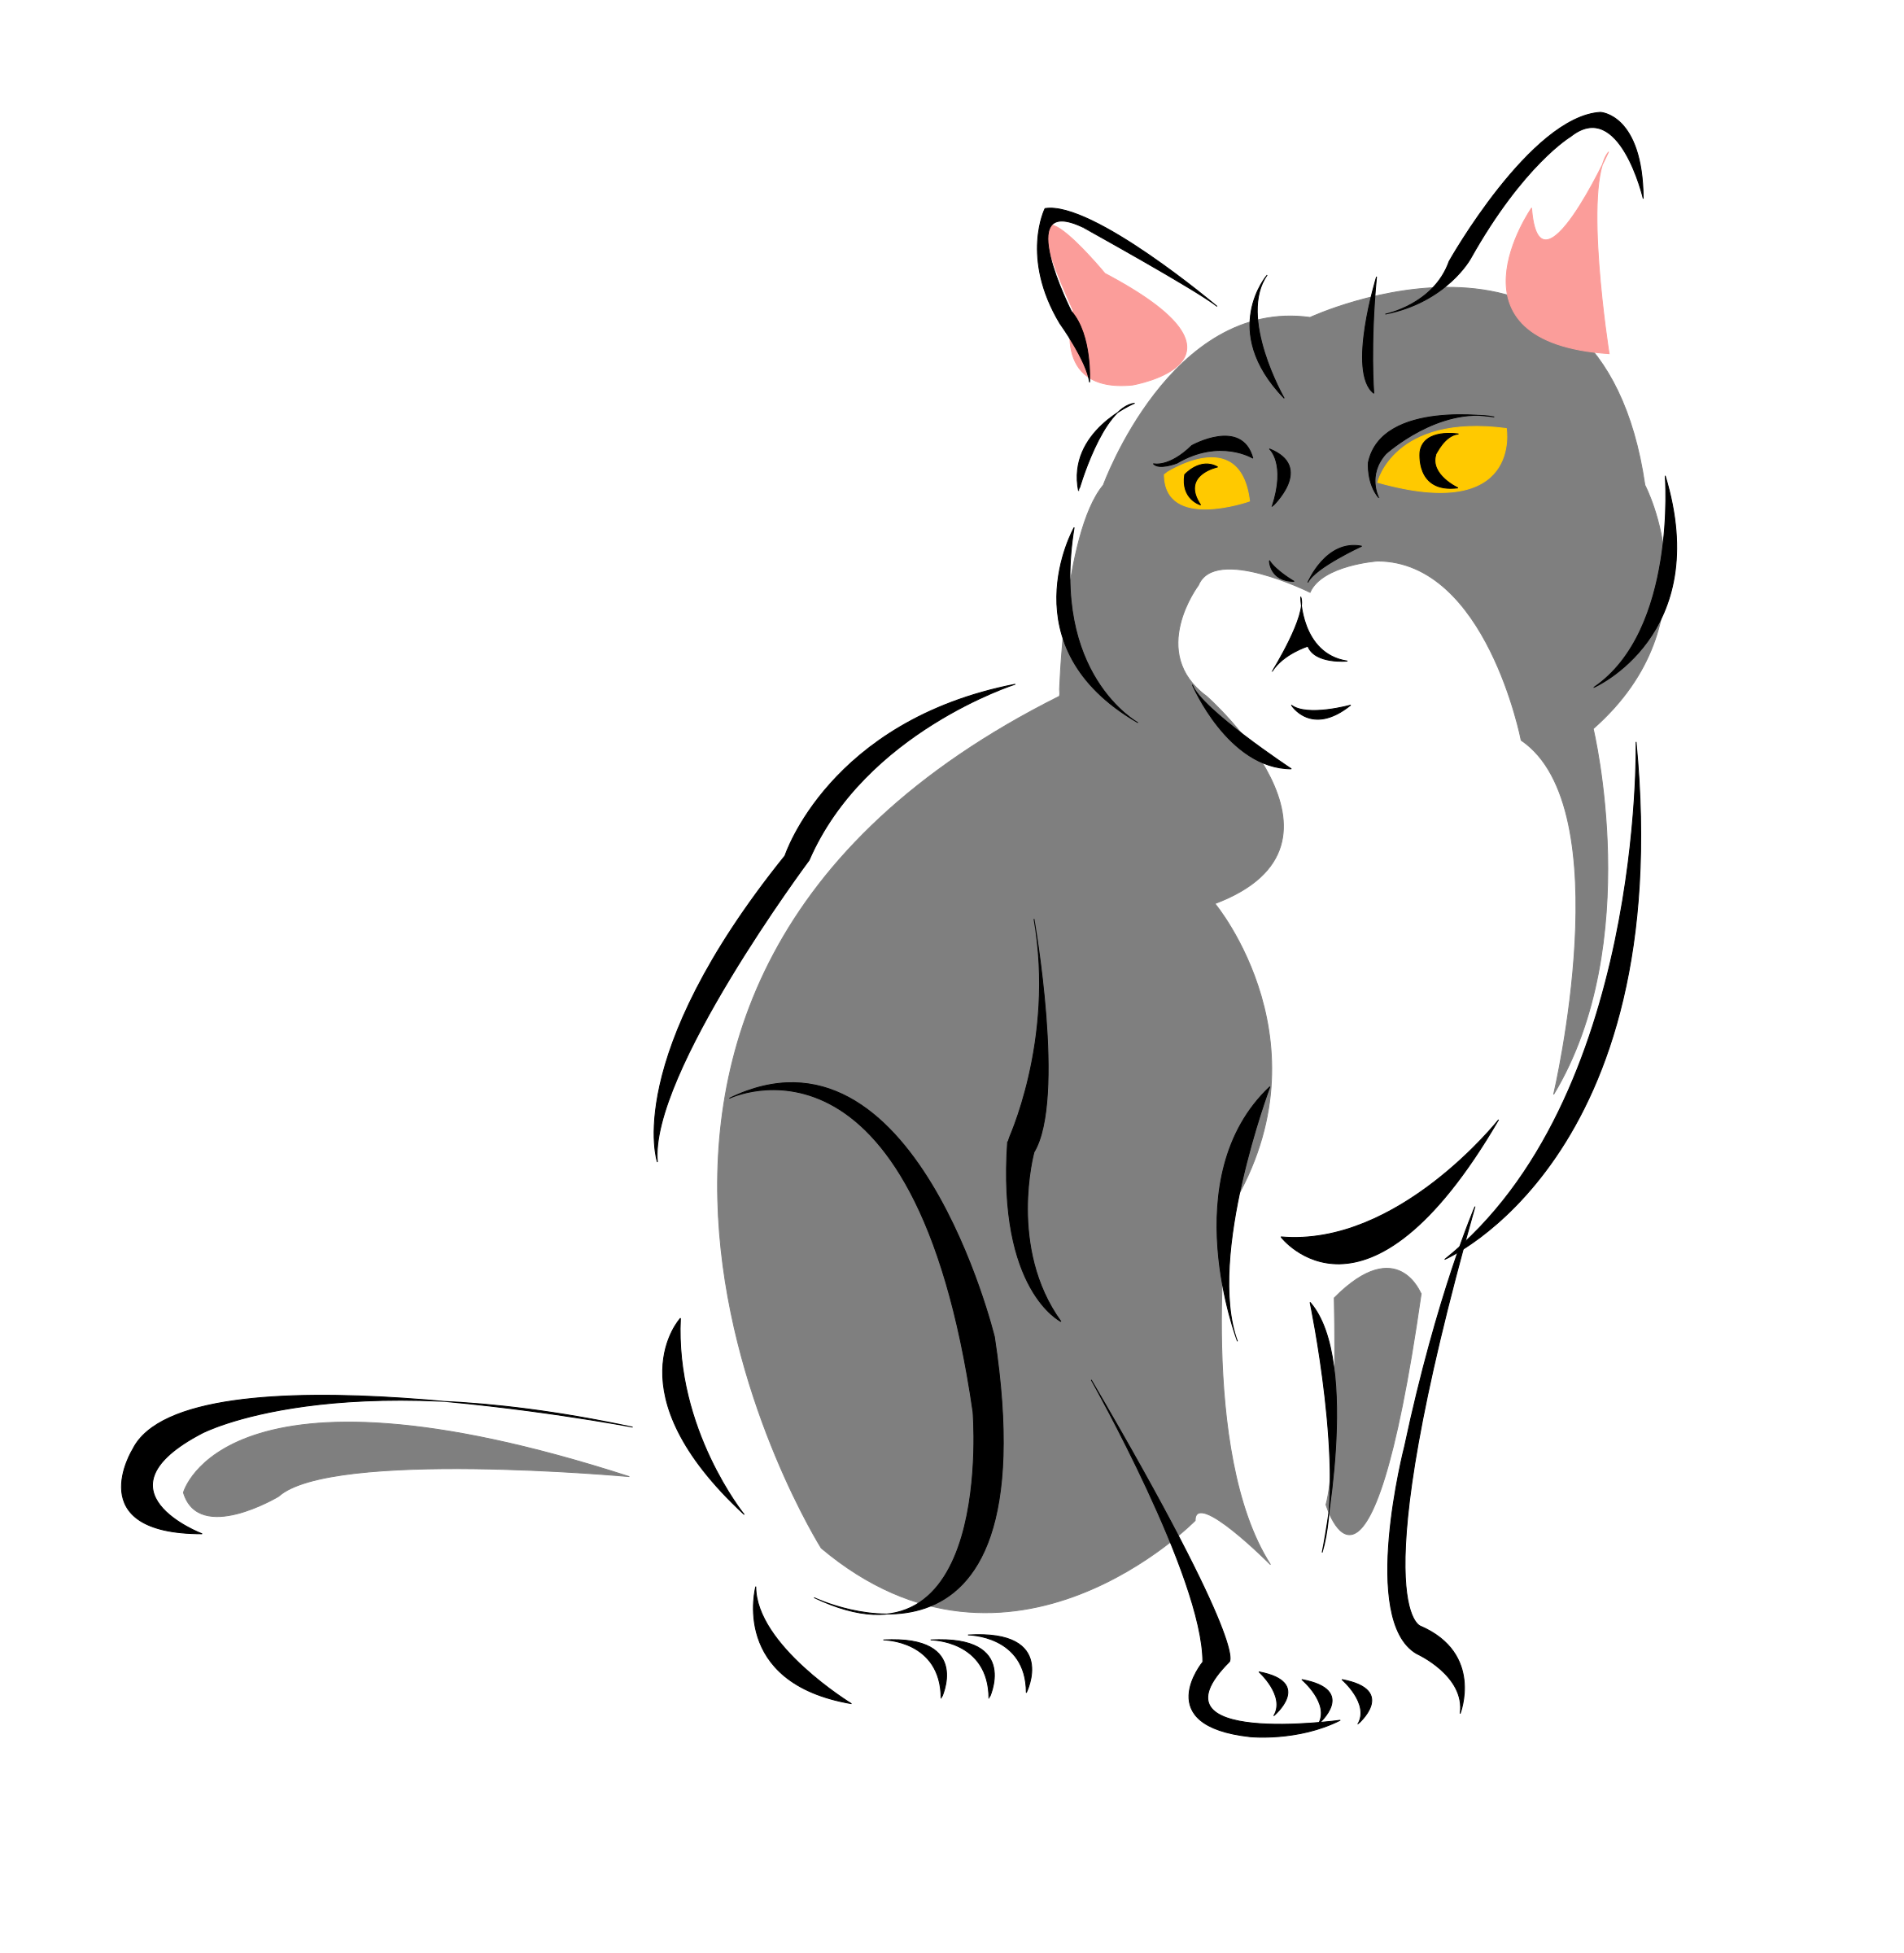 Grey cat by kattekrab